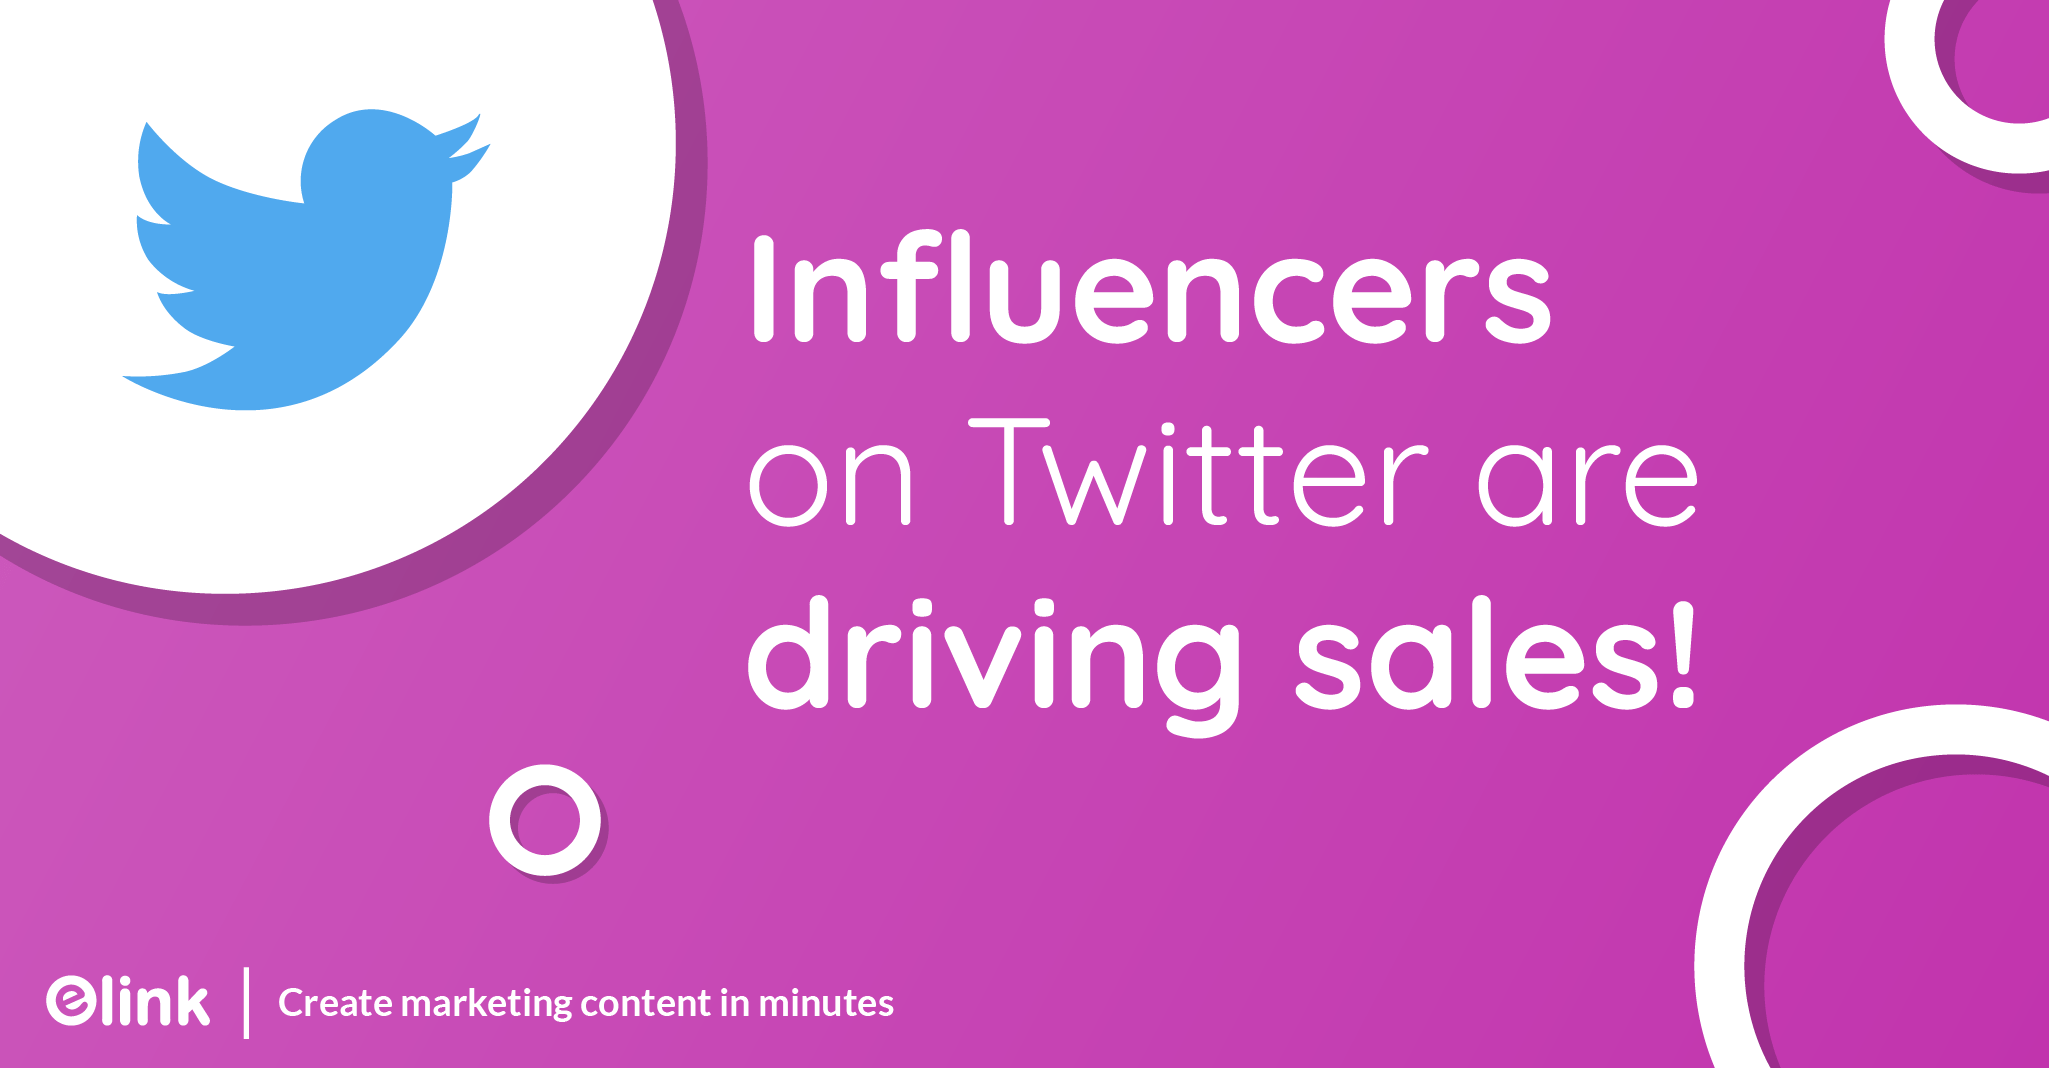 Influencers on Twitter are driving sales!